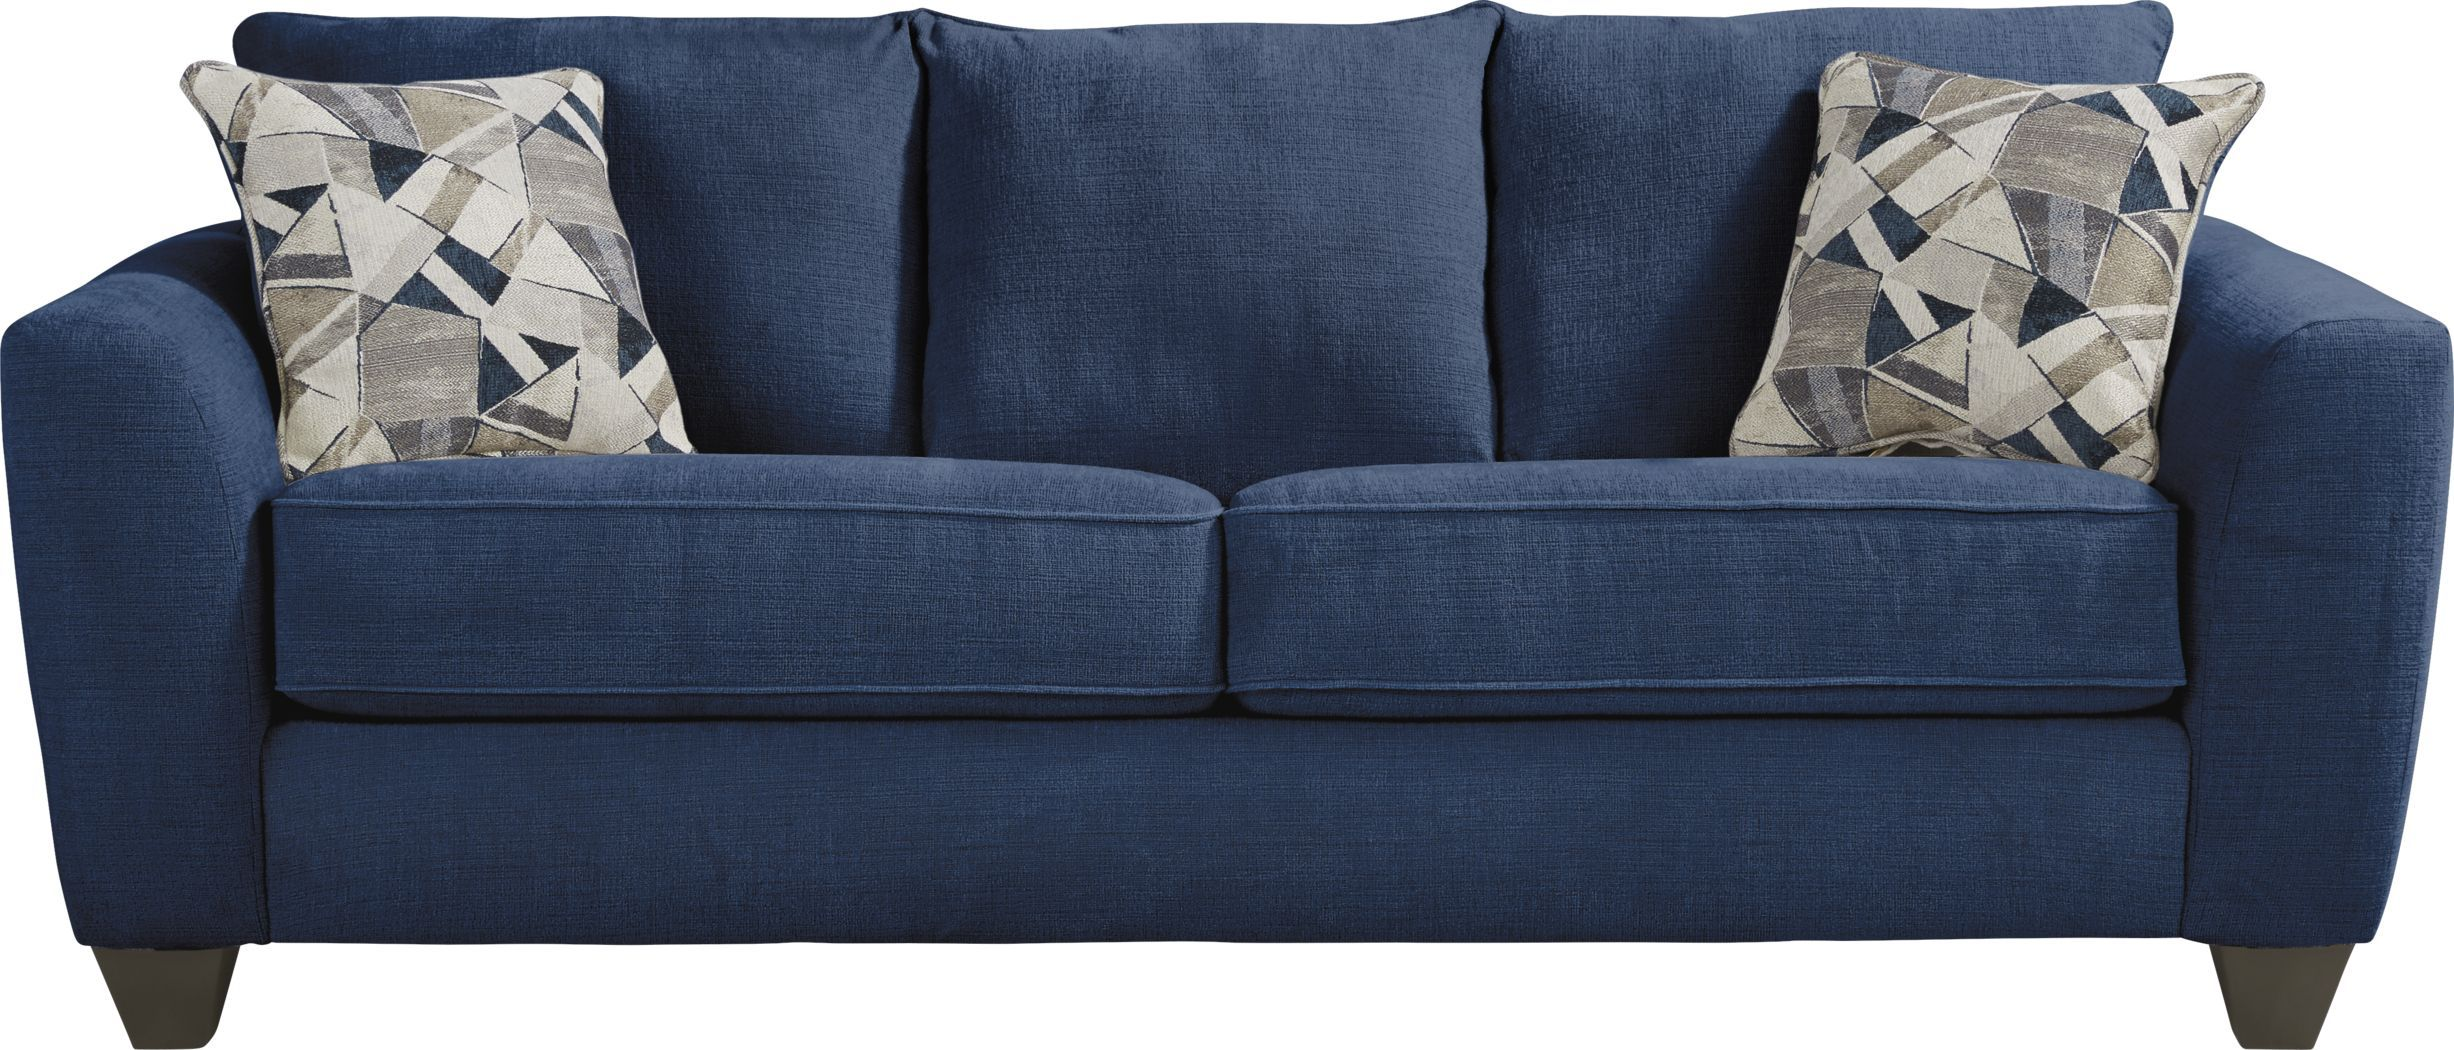 Sandia Heights Blue Sleeper In 2021 Blue Sofa Rooms To Go Blue Sofa Room